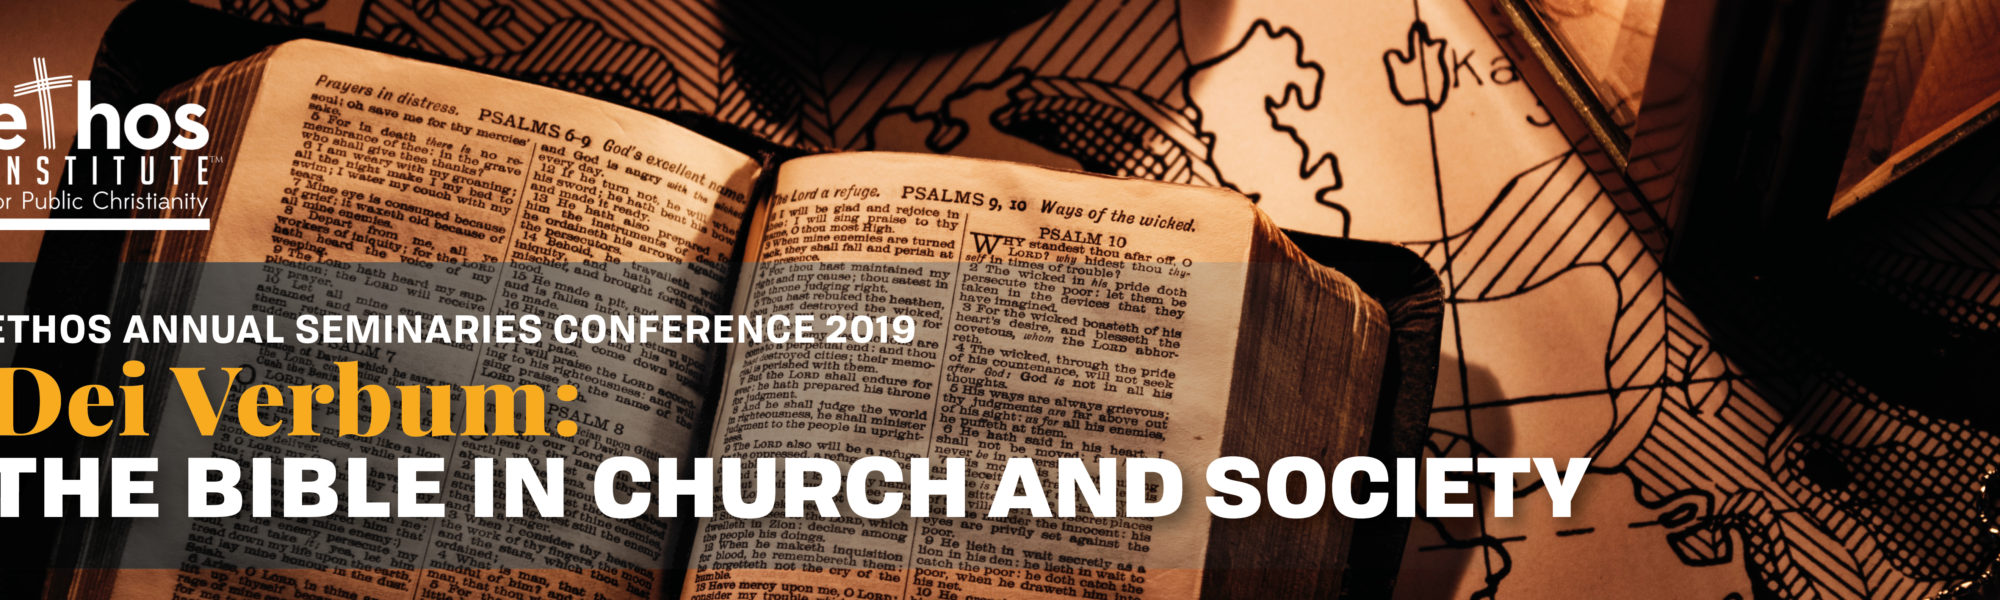 National Council of Churches of Singapore - NCCS